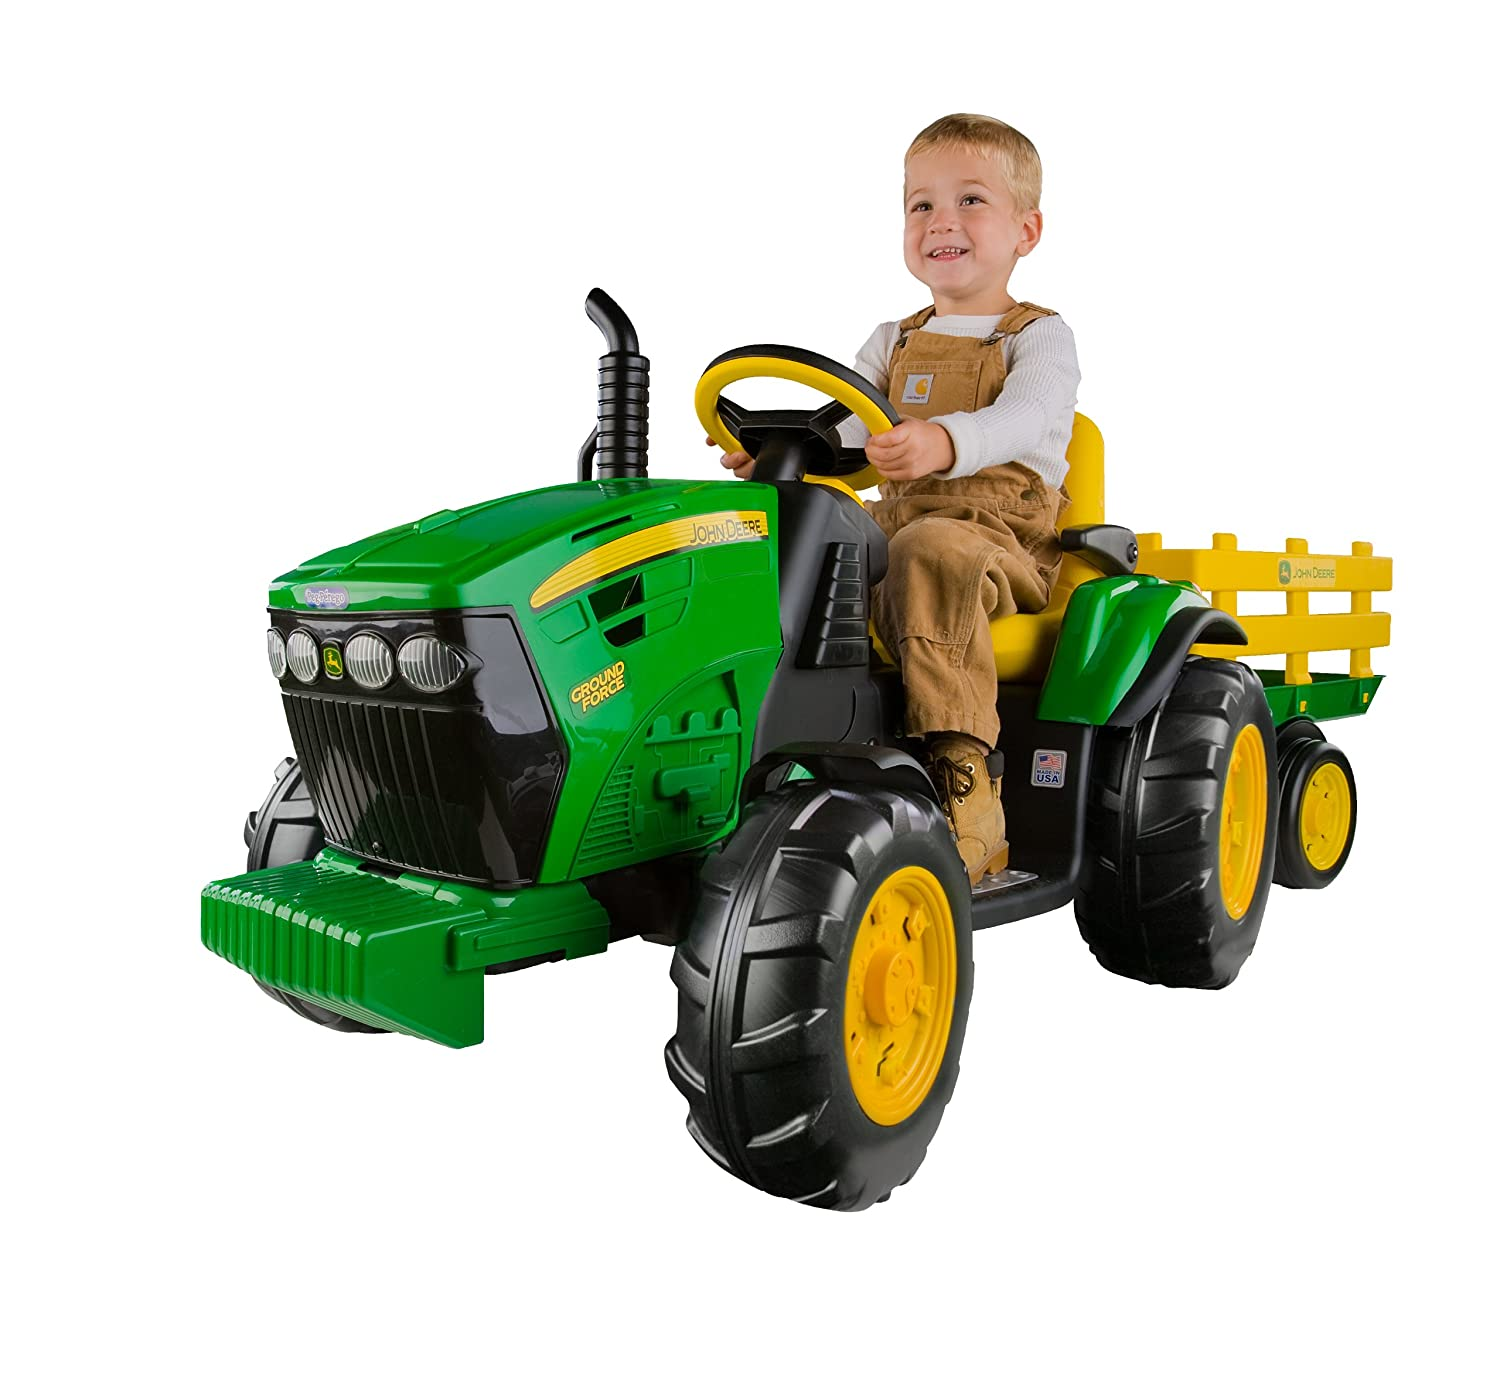 amazoncom peg perego john deere ground force tractor with trailer toys games